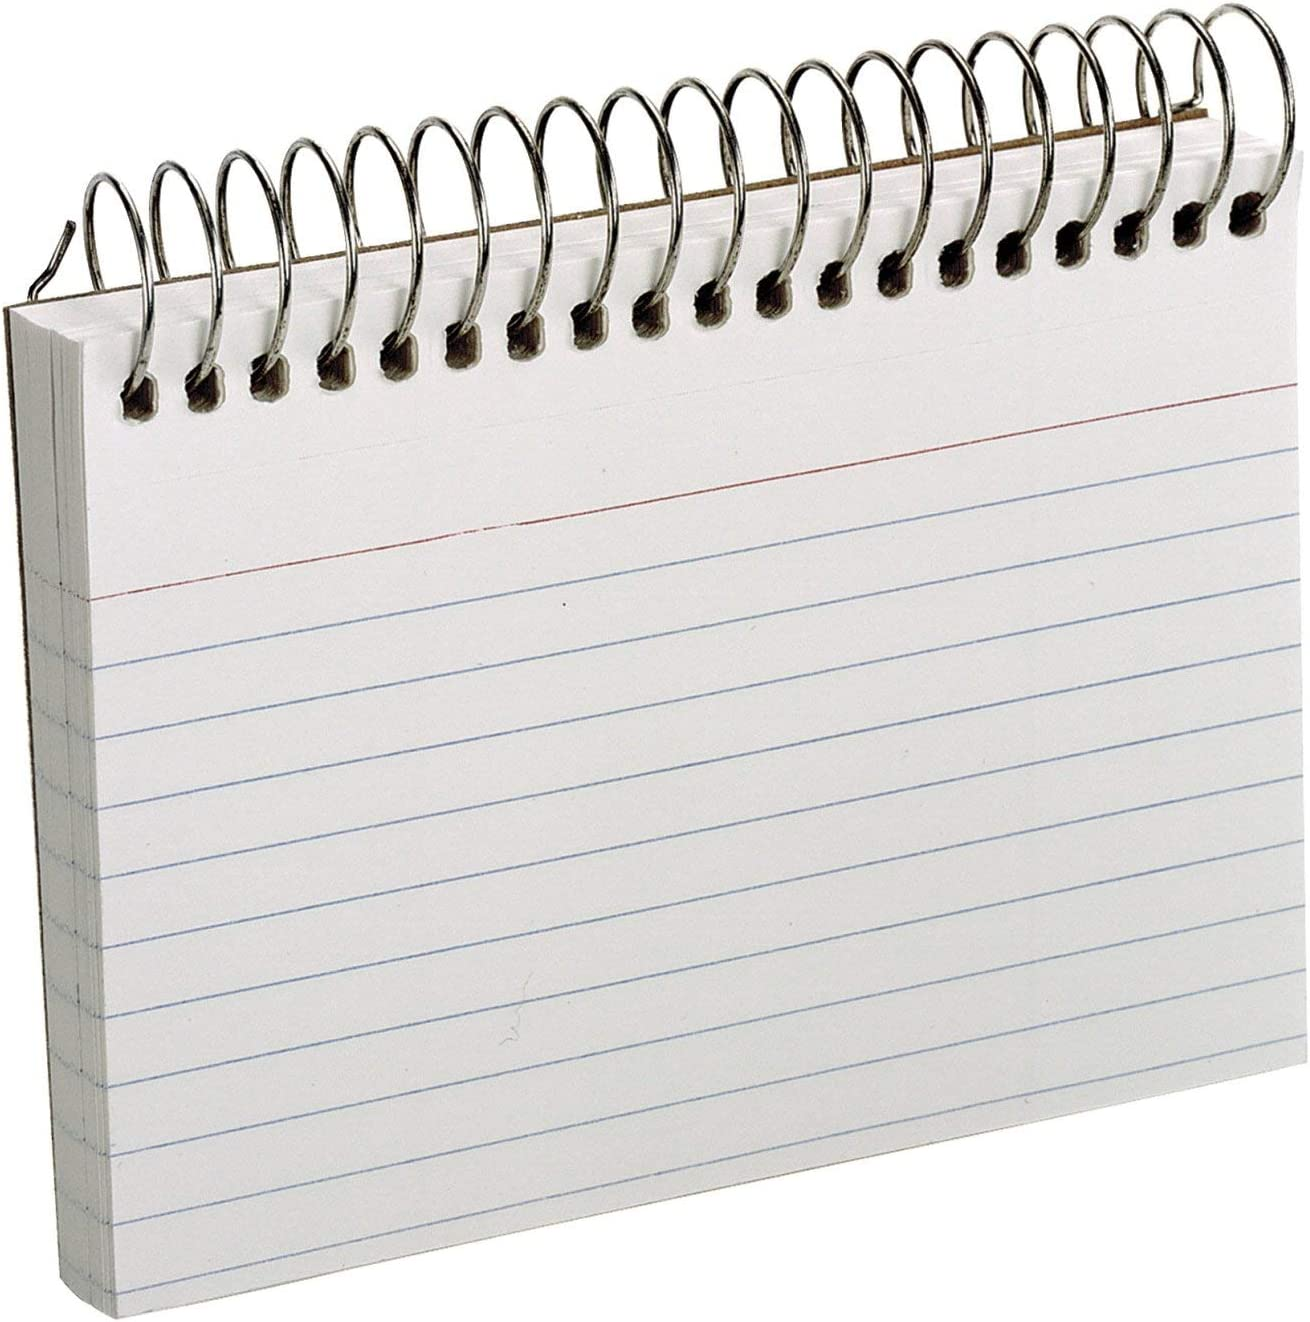 Oxford 40282 Spiral Bound Index Perforated Cards Ruled Super Special SALE sold out held 3-Inch x5